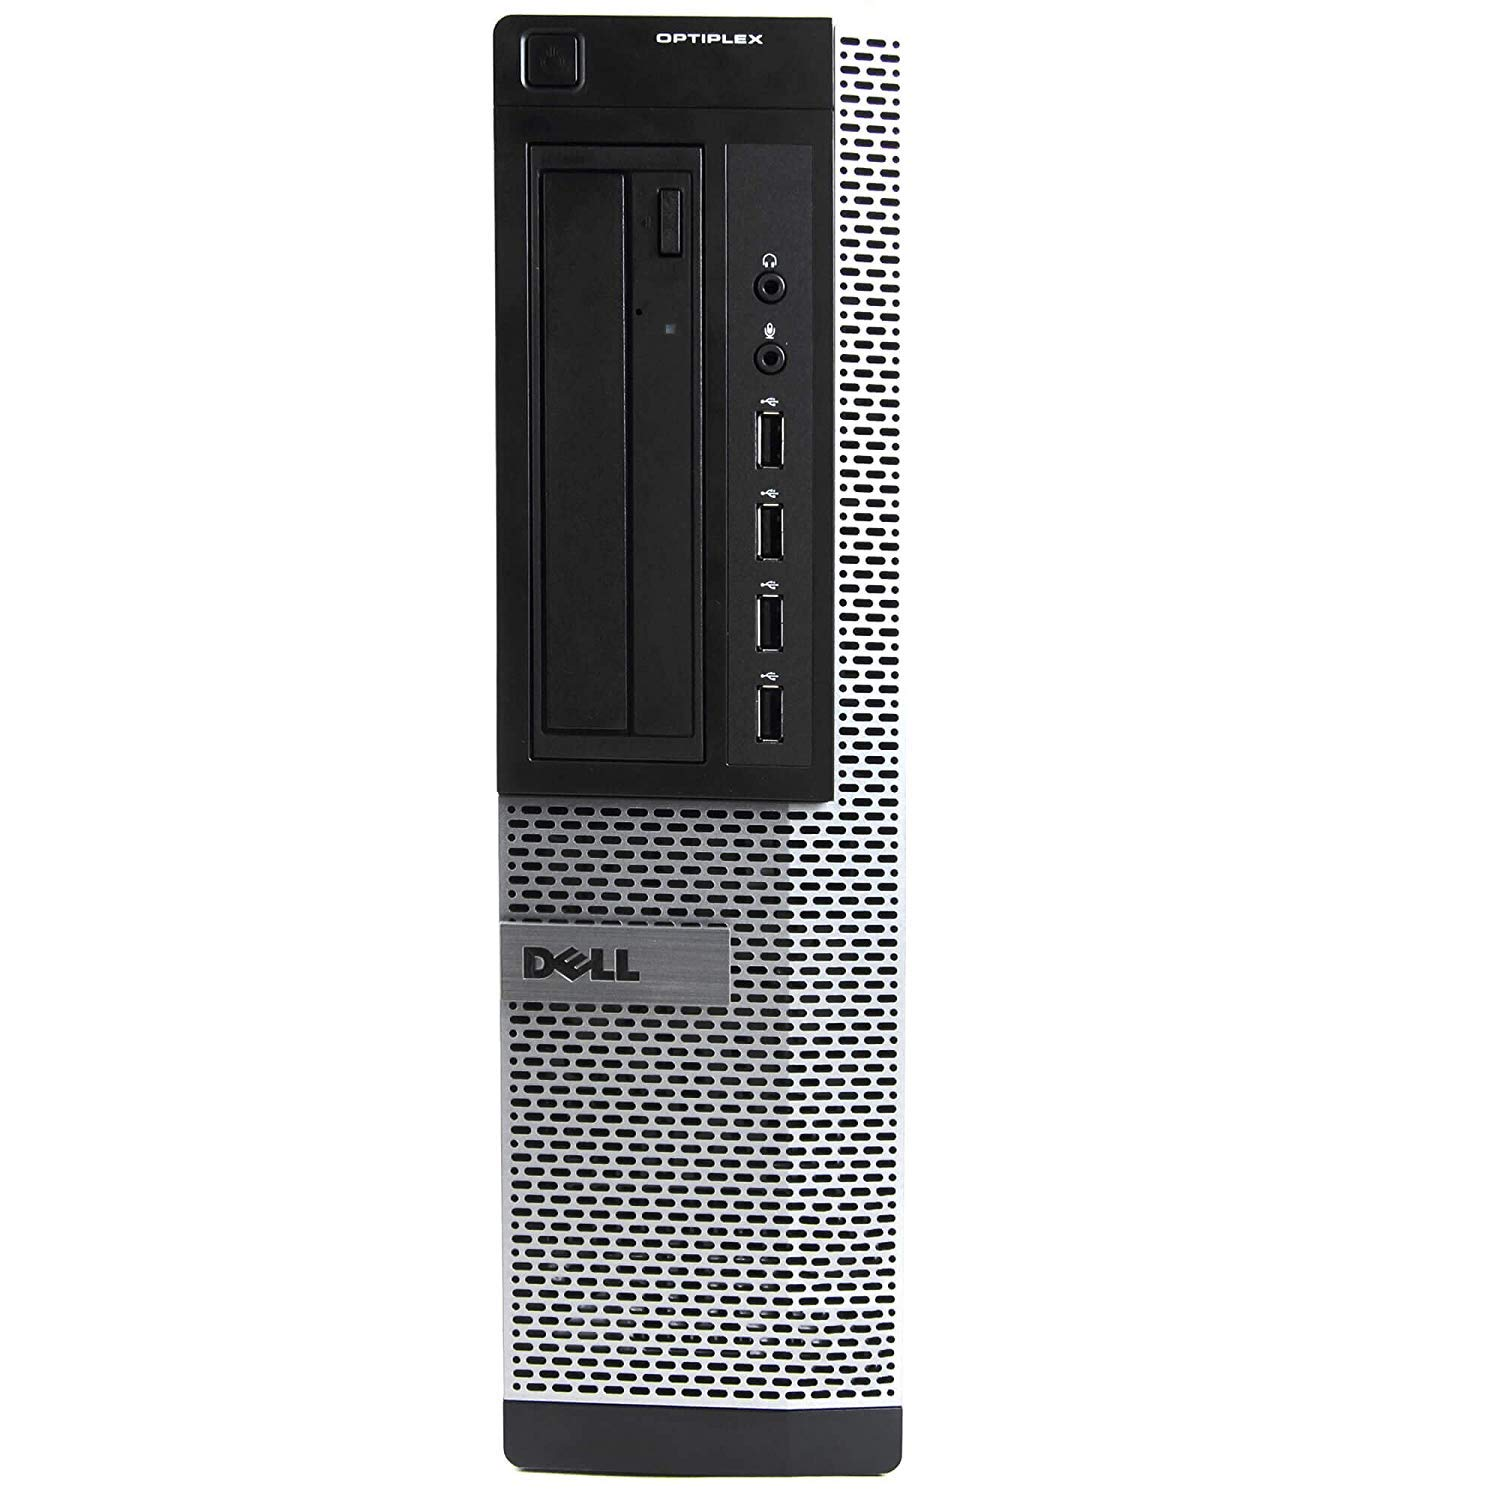 Dell Optiplex 7010 Business Desktop Computer (Intel Quad Core i5-3470  3 2GHz, 16GB RAM, 2TB HDD, USB 3 0, DVDRW, Windows 10 Professional)  (Renewed)